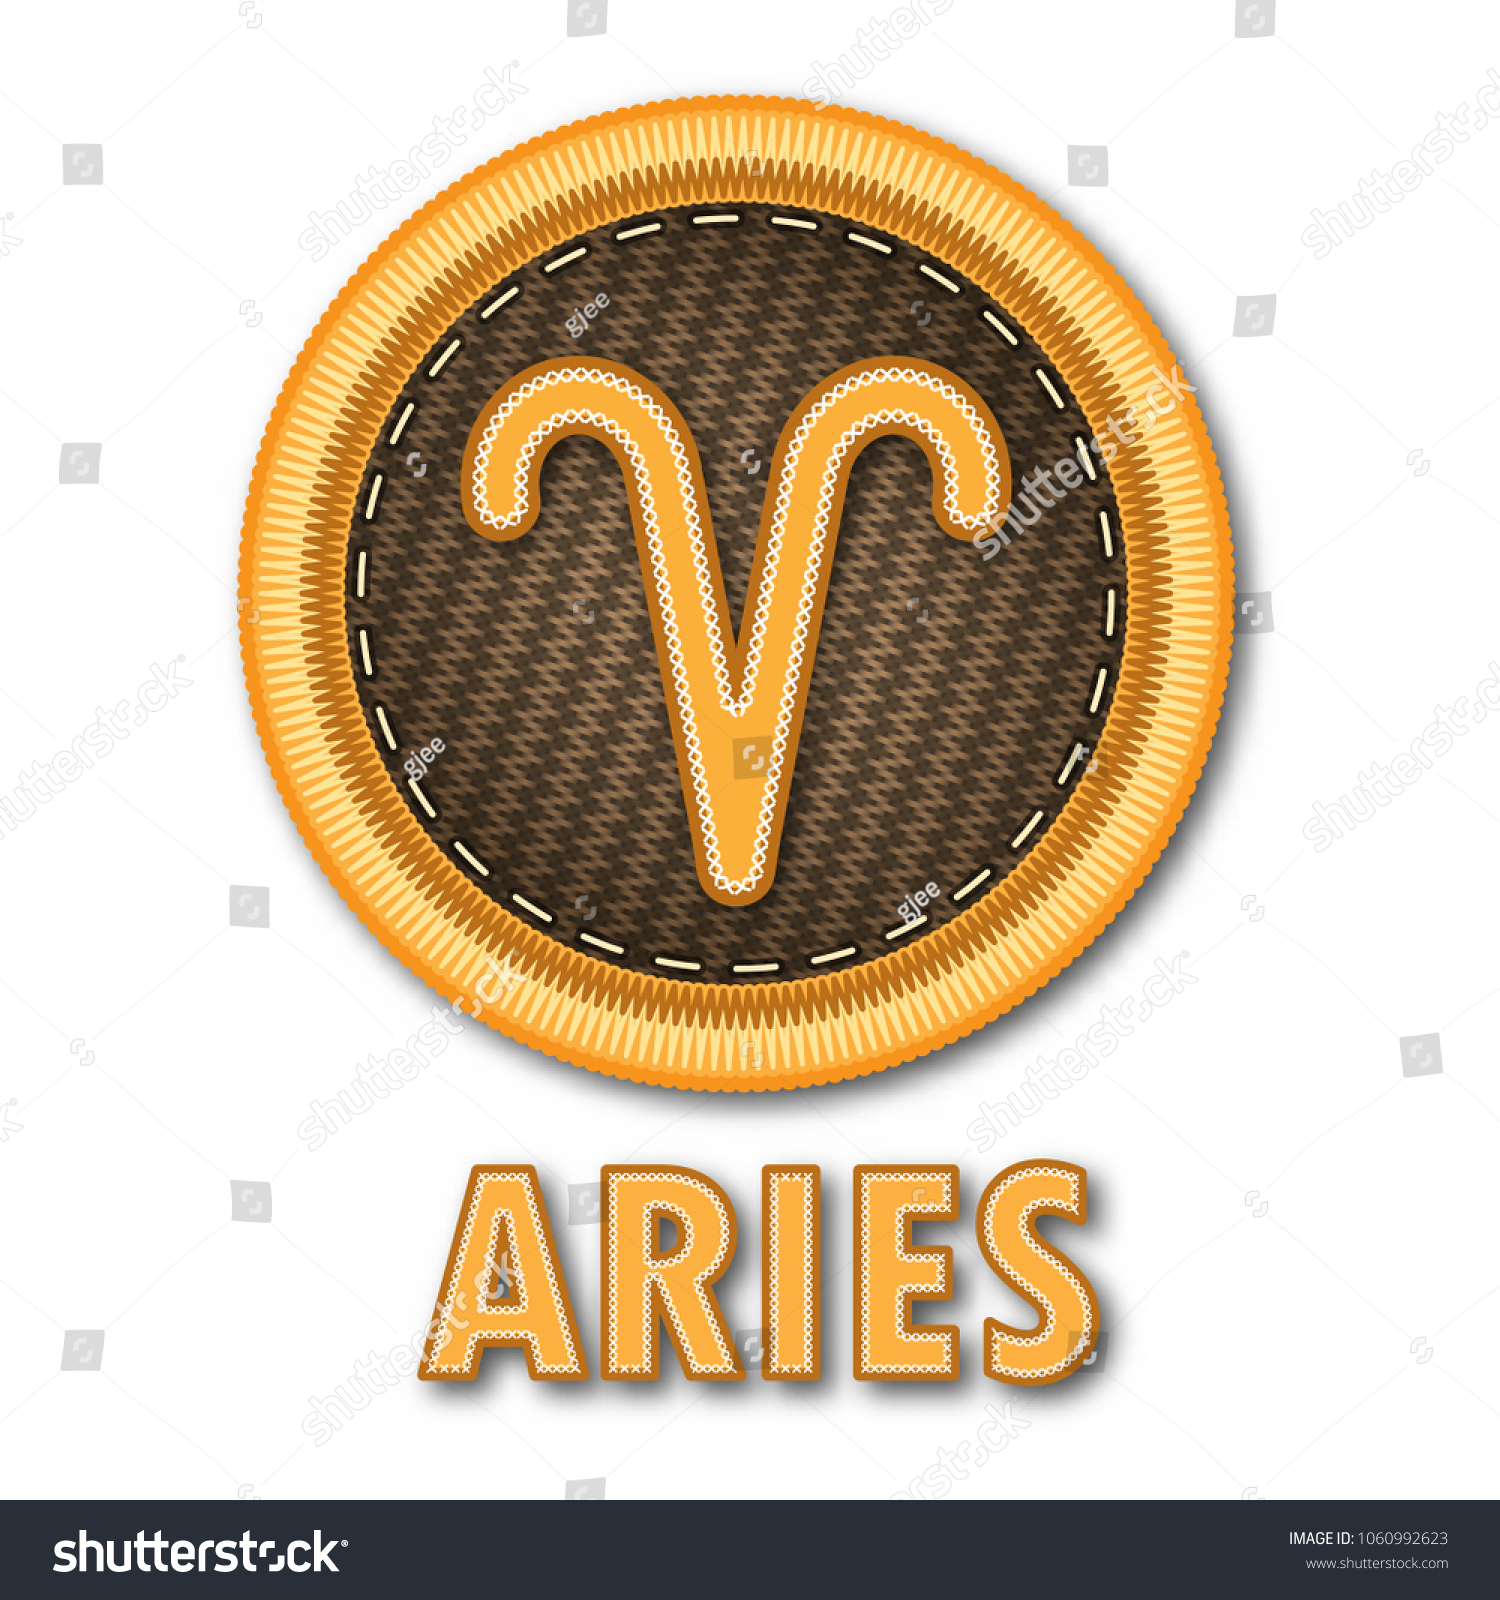 Embroidered patch work aries zodiac sign stock vector 1060992623 embroidered patch work of aries zodiac sign symbol icon for vector graphic design concept idea biocorpaavc Gallery